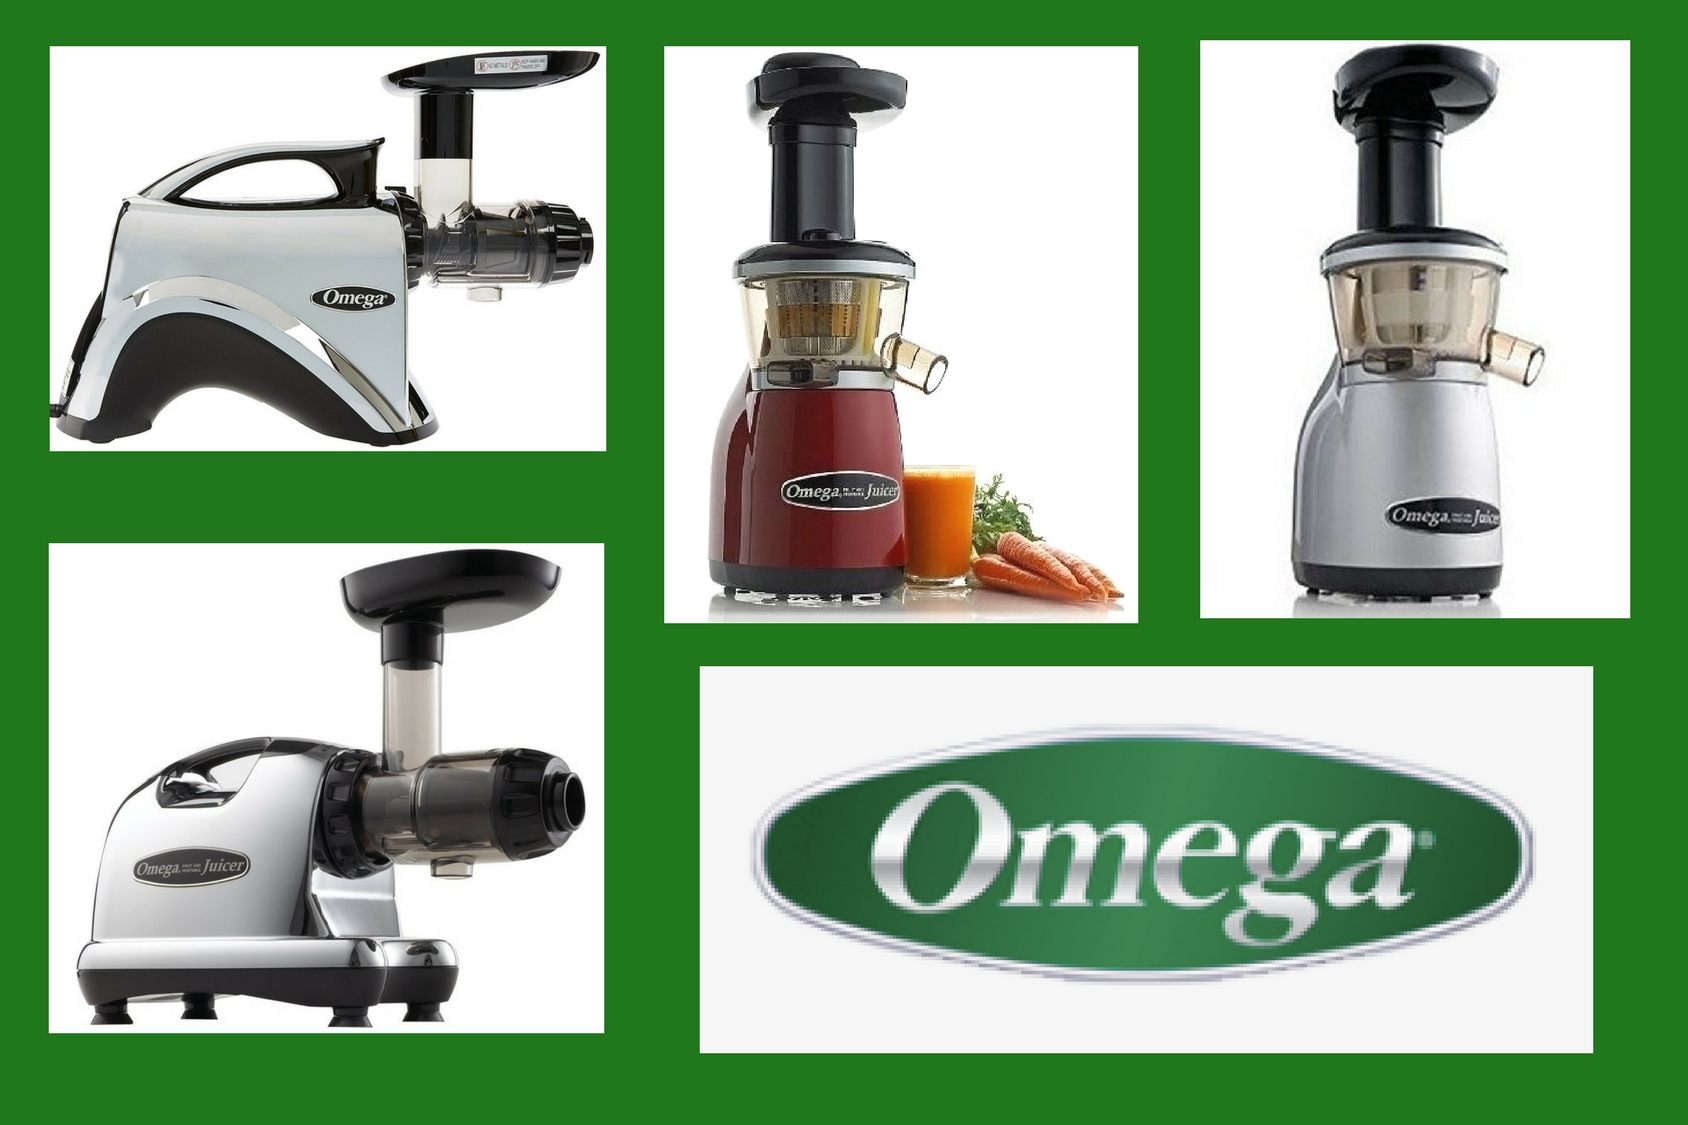 What Is The Best Type Of Masticating Juicer : Which Omega Juicer Should I Buy? ~ The Juice Authority